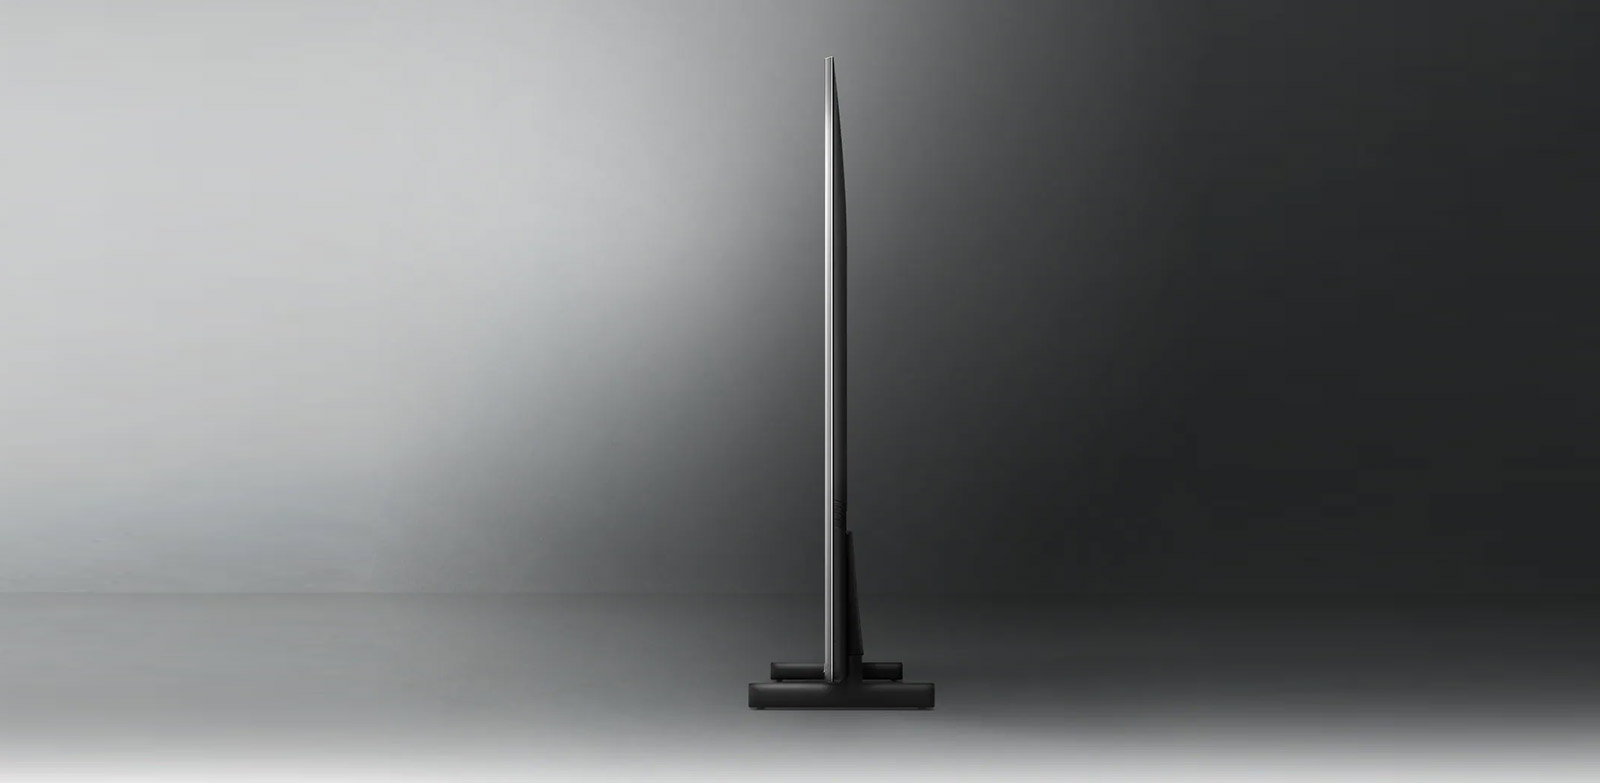 Sleek and slim, more than ever UA85AU8000KXXA - side view-Extension-Images_appliance_Modular